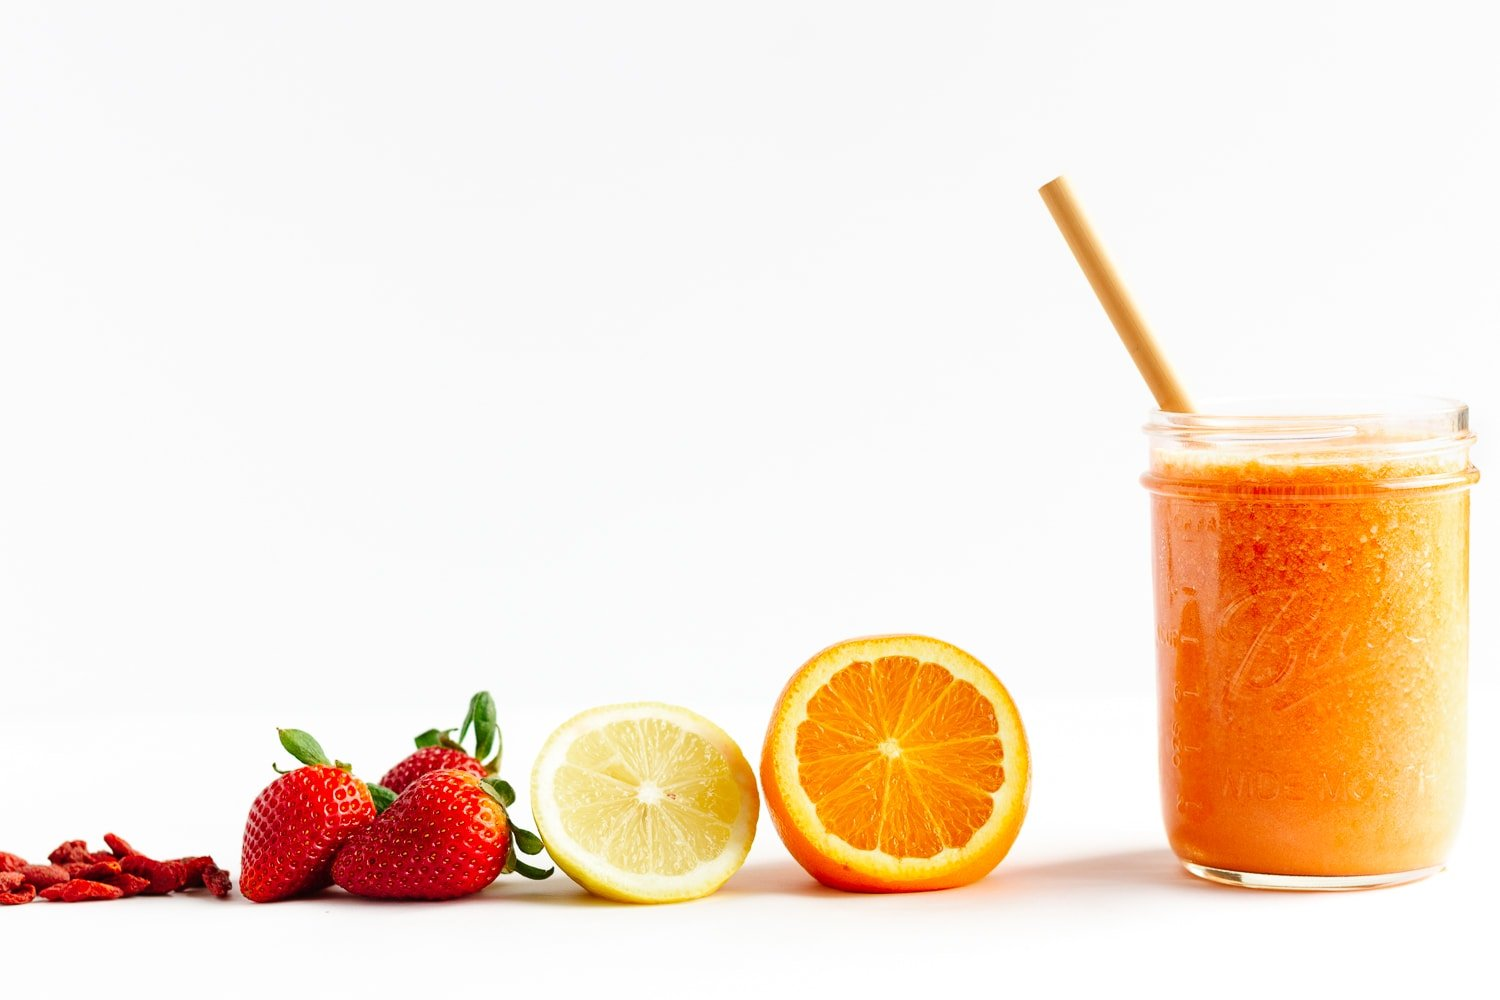 Goji berries, strawberries, lemon, orange and glass of Vitamin C Smoothie lined up on a white background.